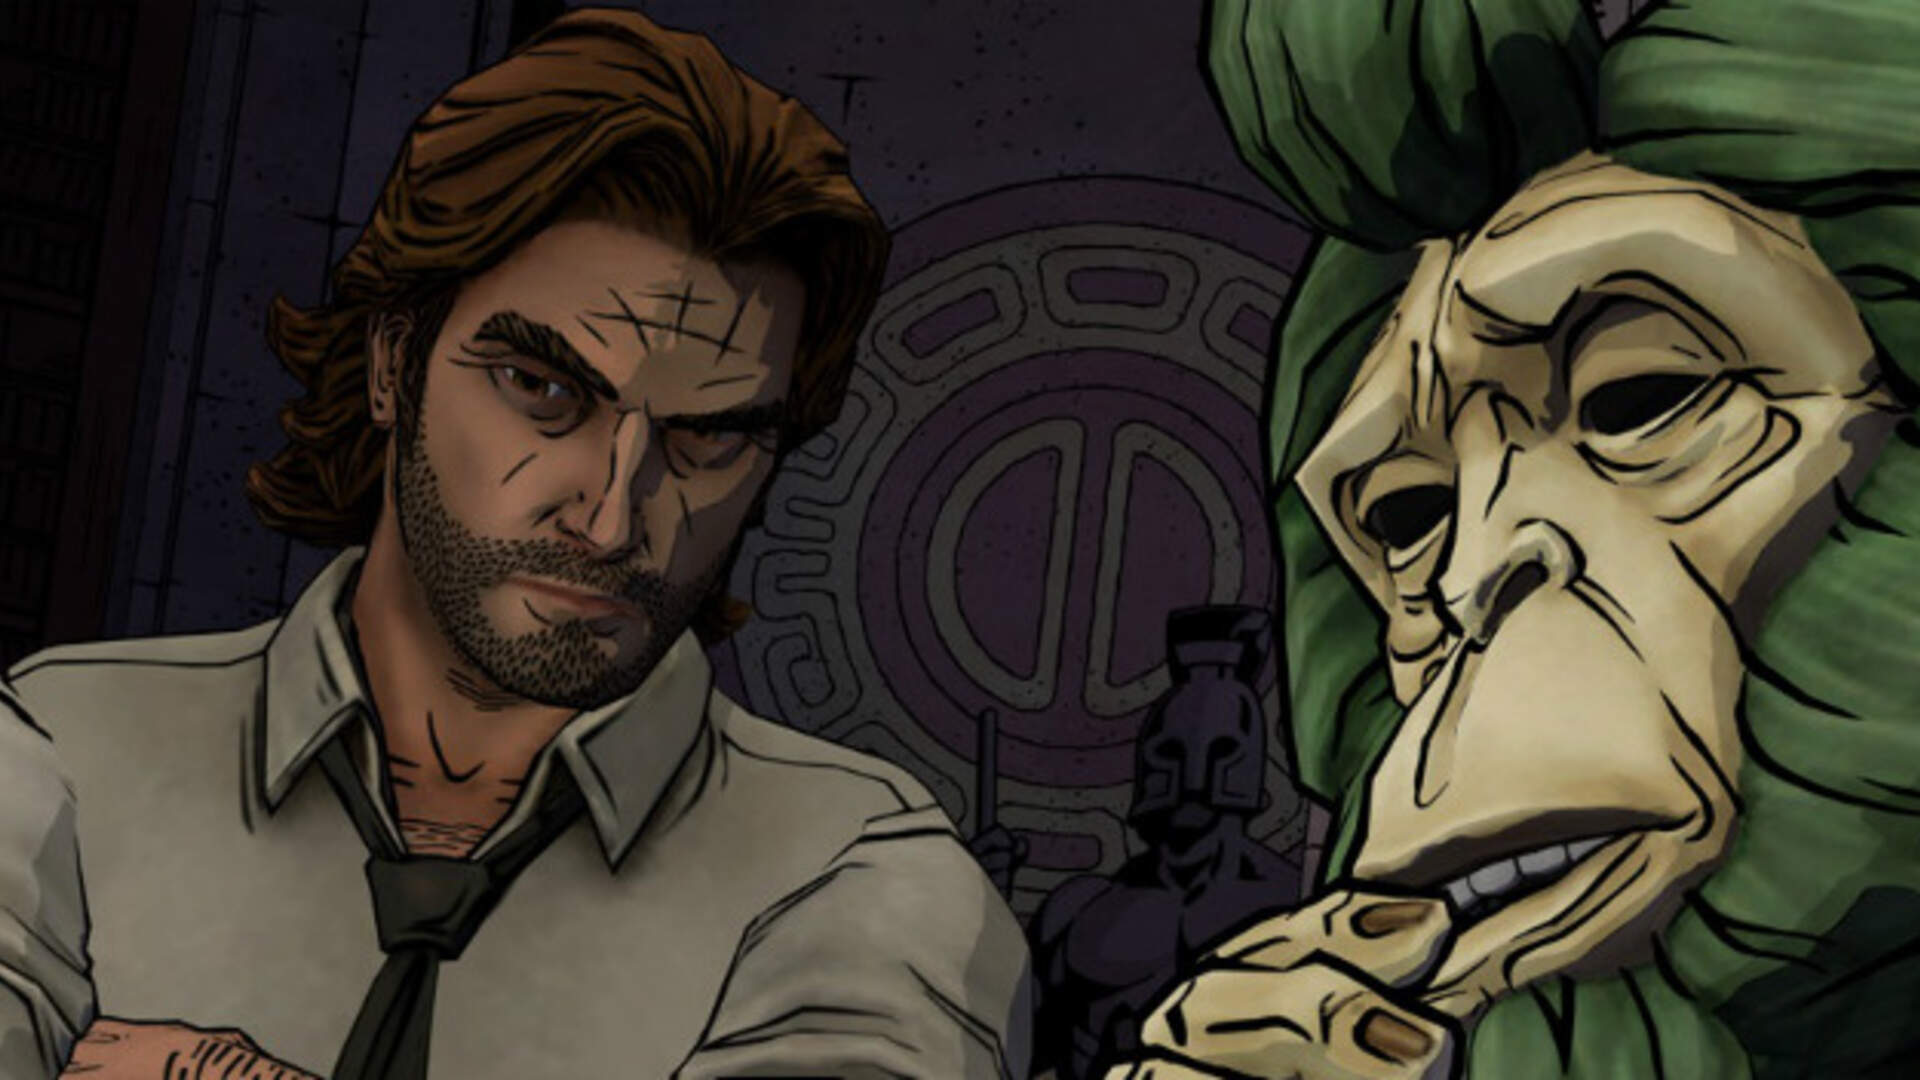 The Wolf Among Us Episode 3, A Crooked Mile PC Review: Shock and Awe